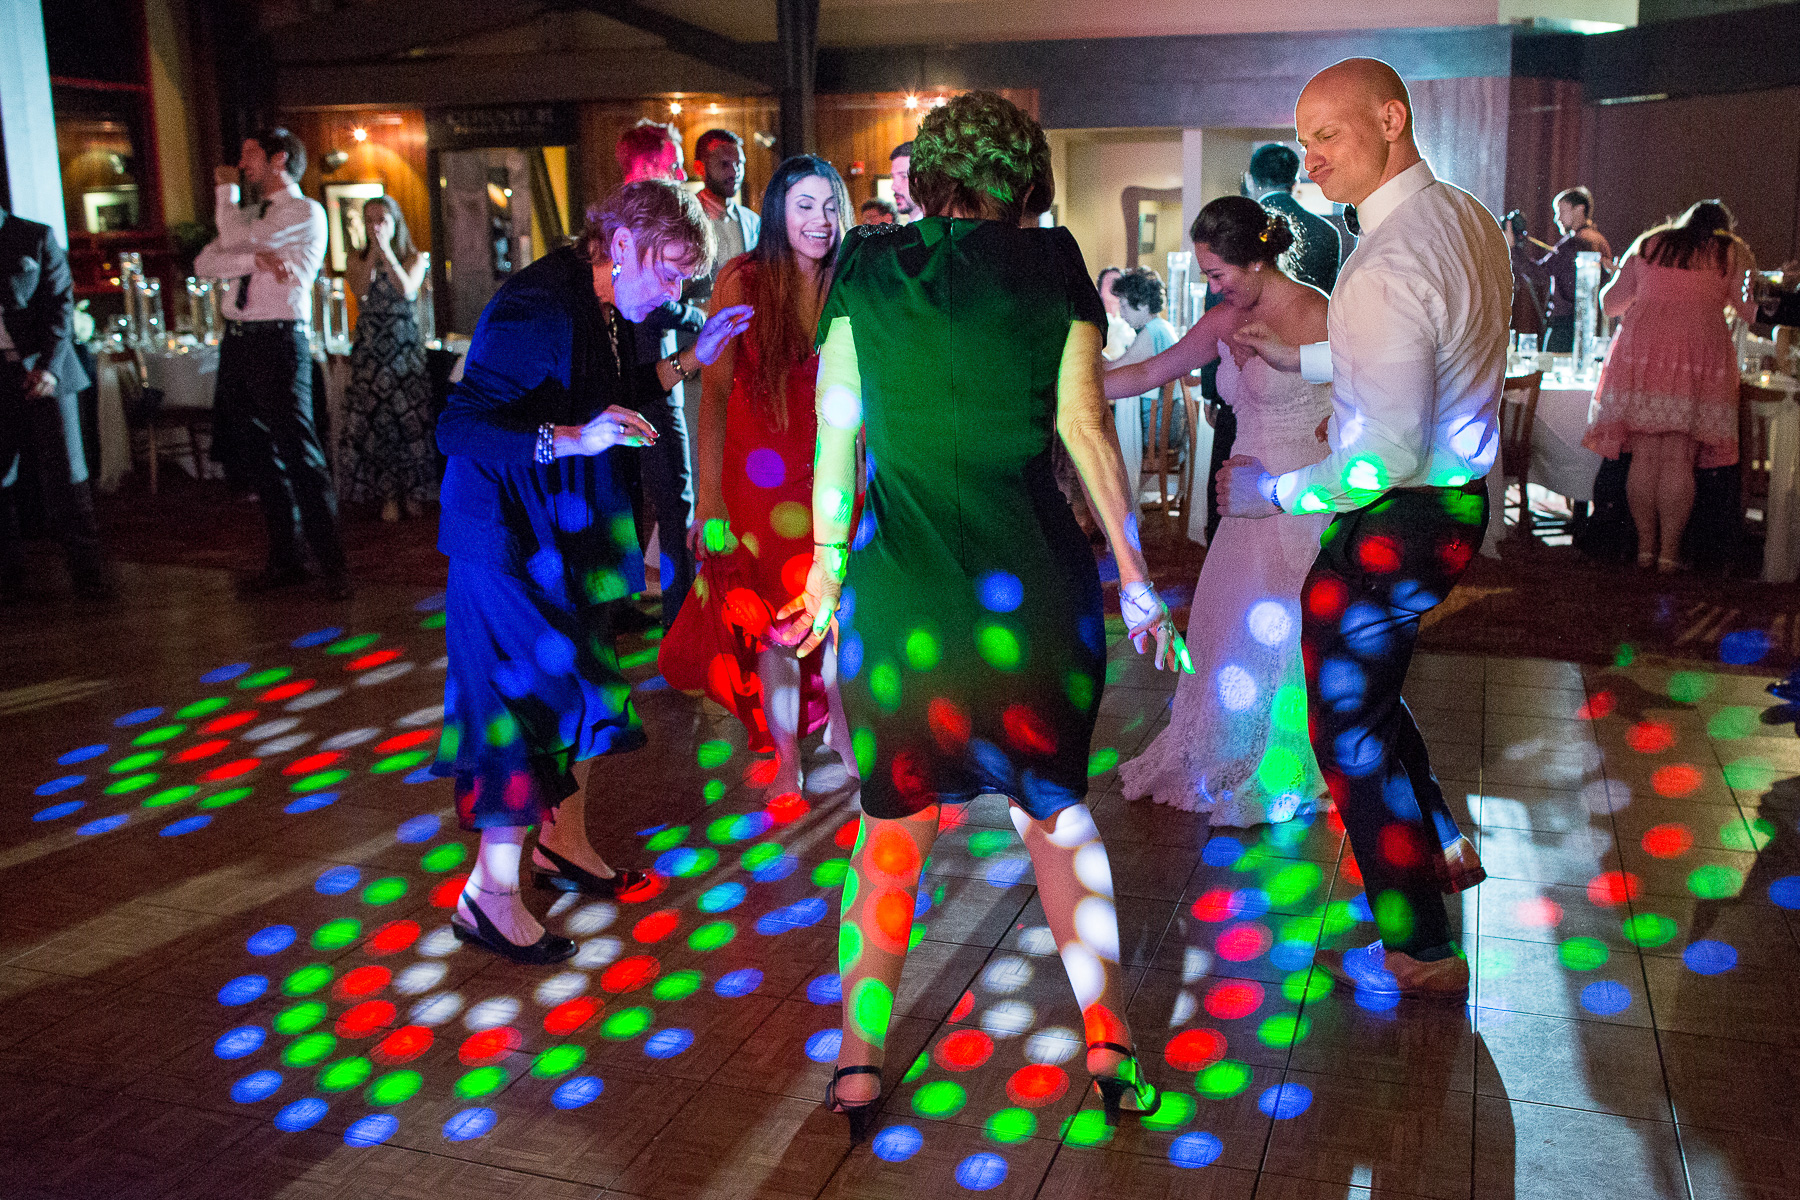 older women, a bride and a guy making a duck face dancing at an indoor wedding with crazy lights